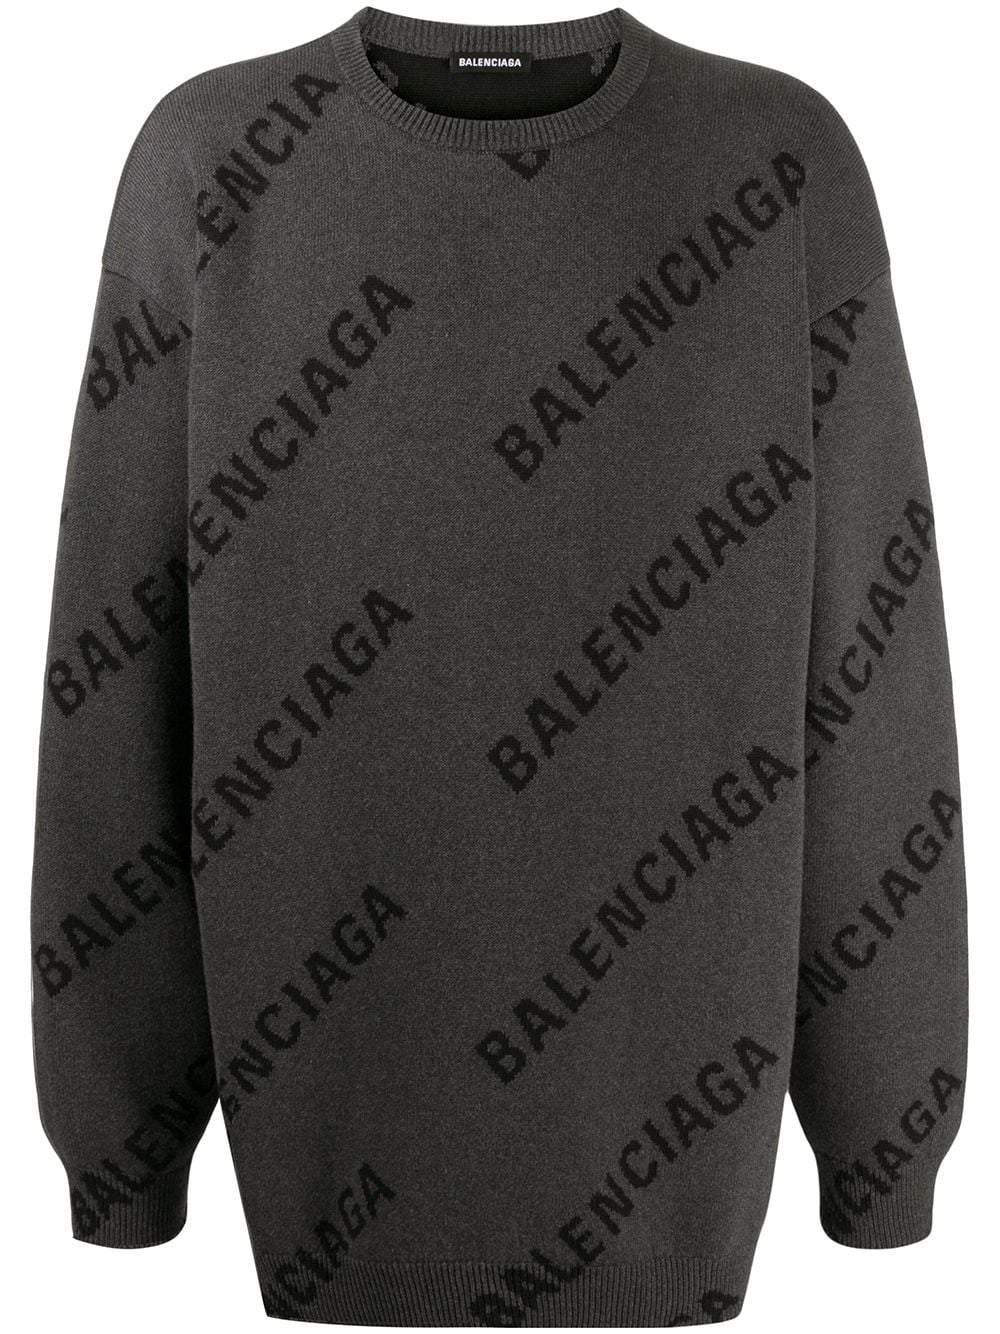 BALENCIAGA All Over Logo Knitted Sweatshirt